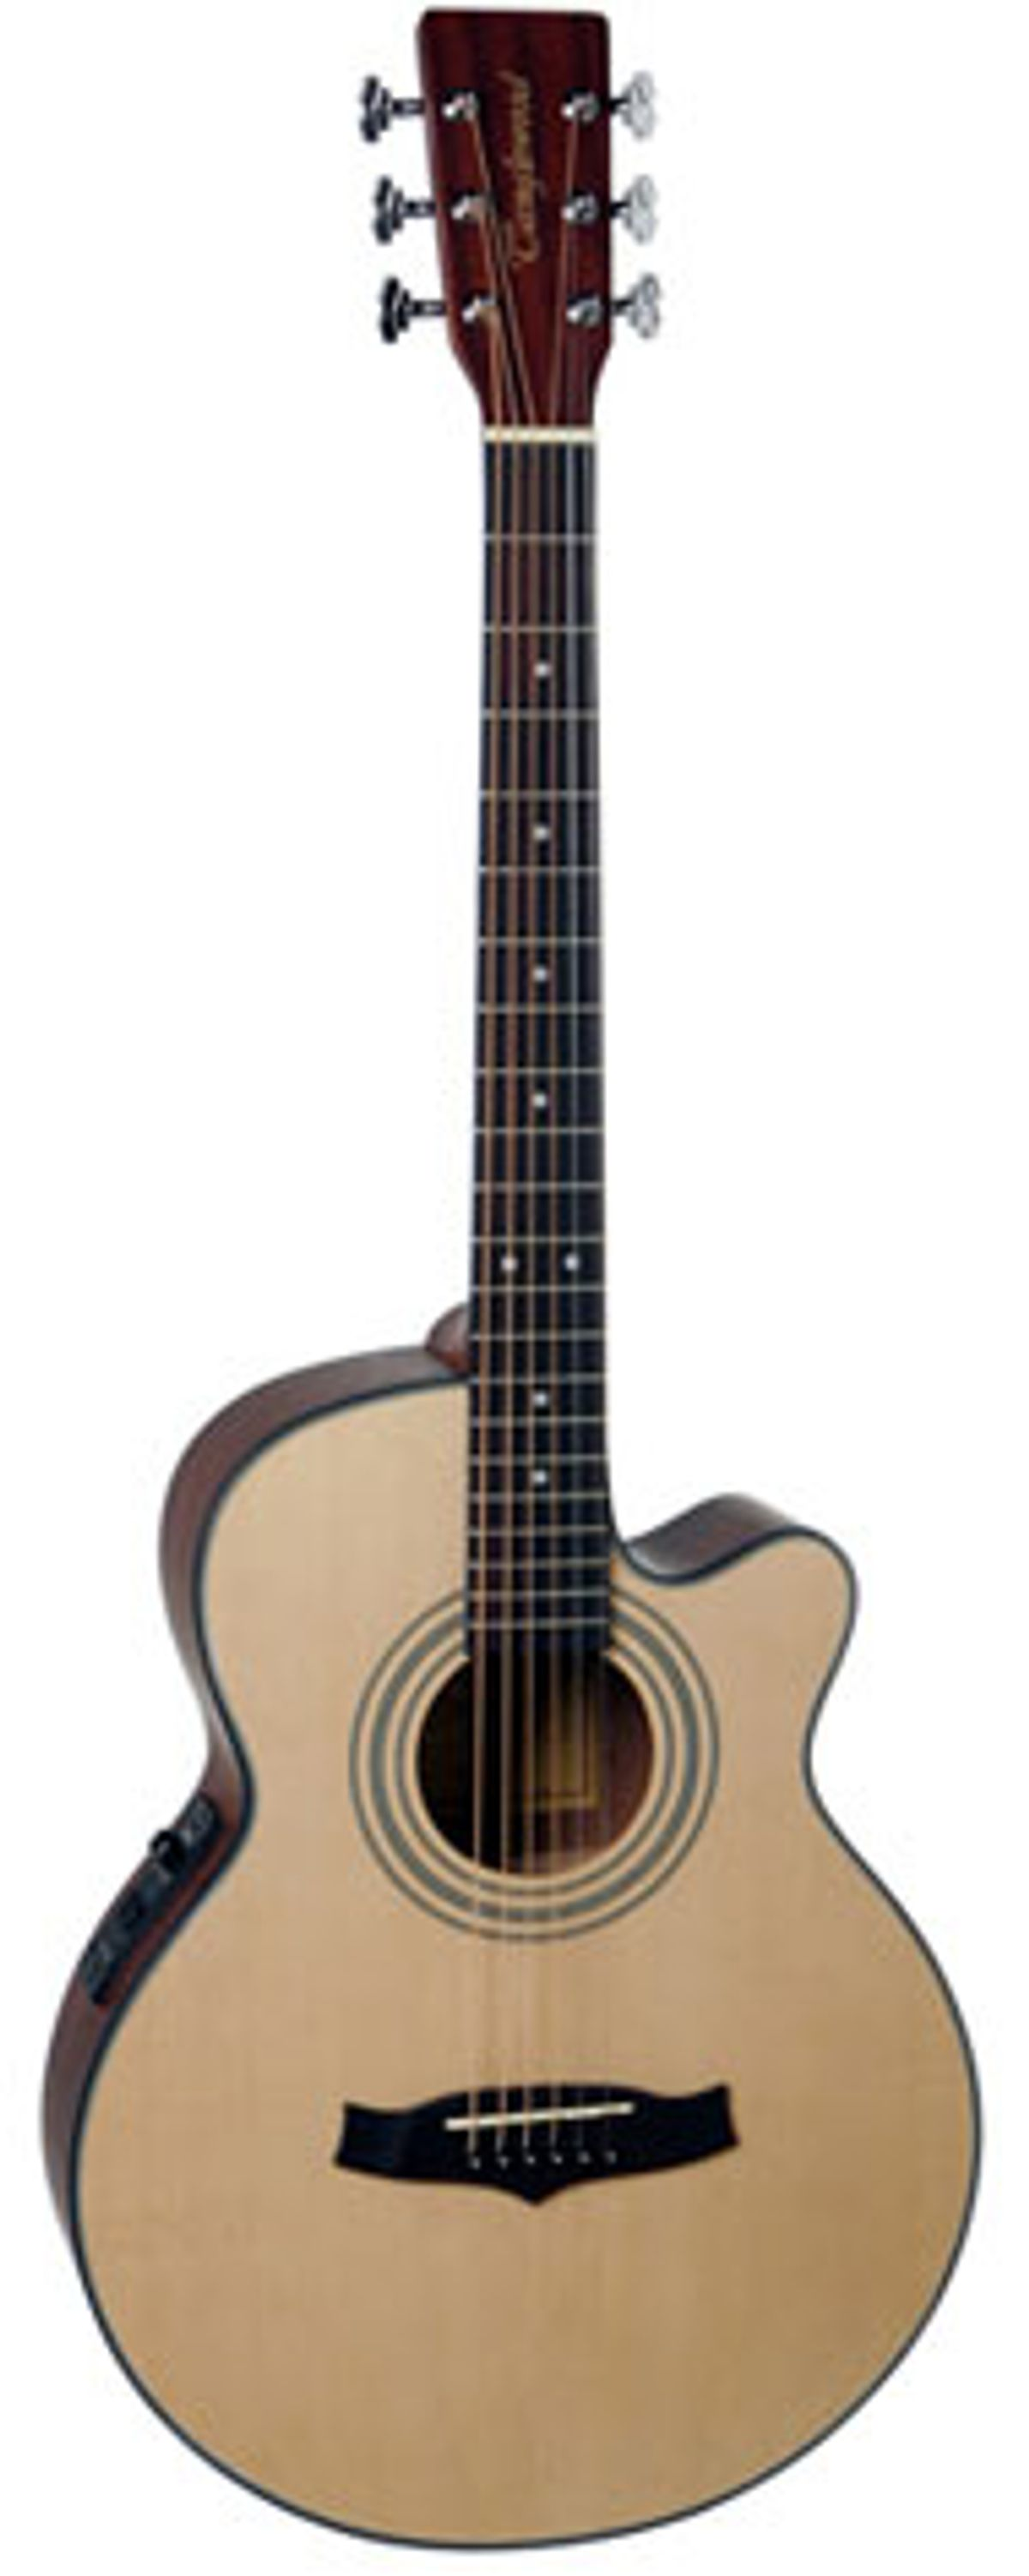 Tanglewood Guitars are Coming